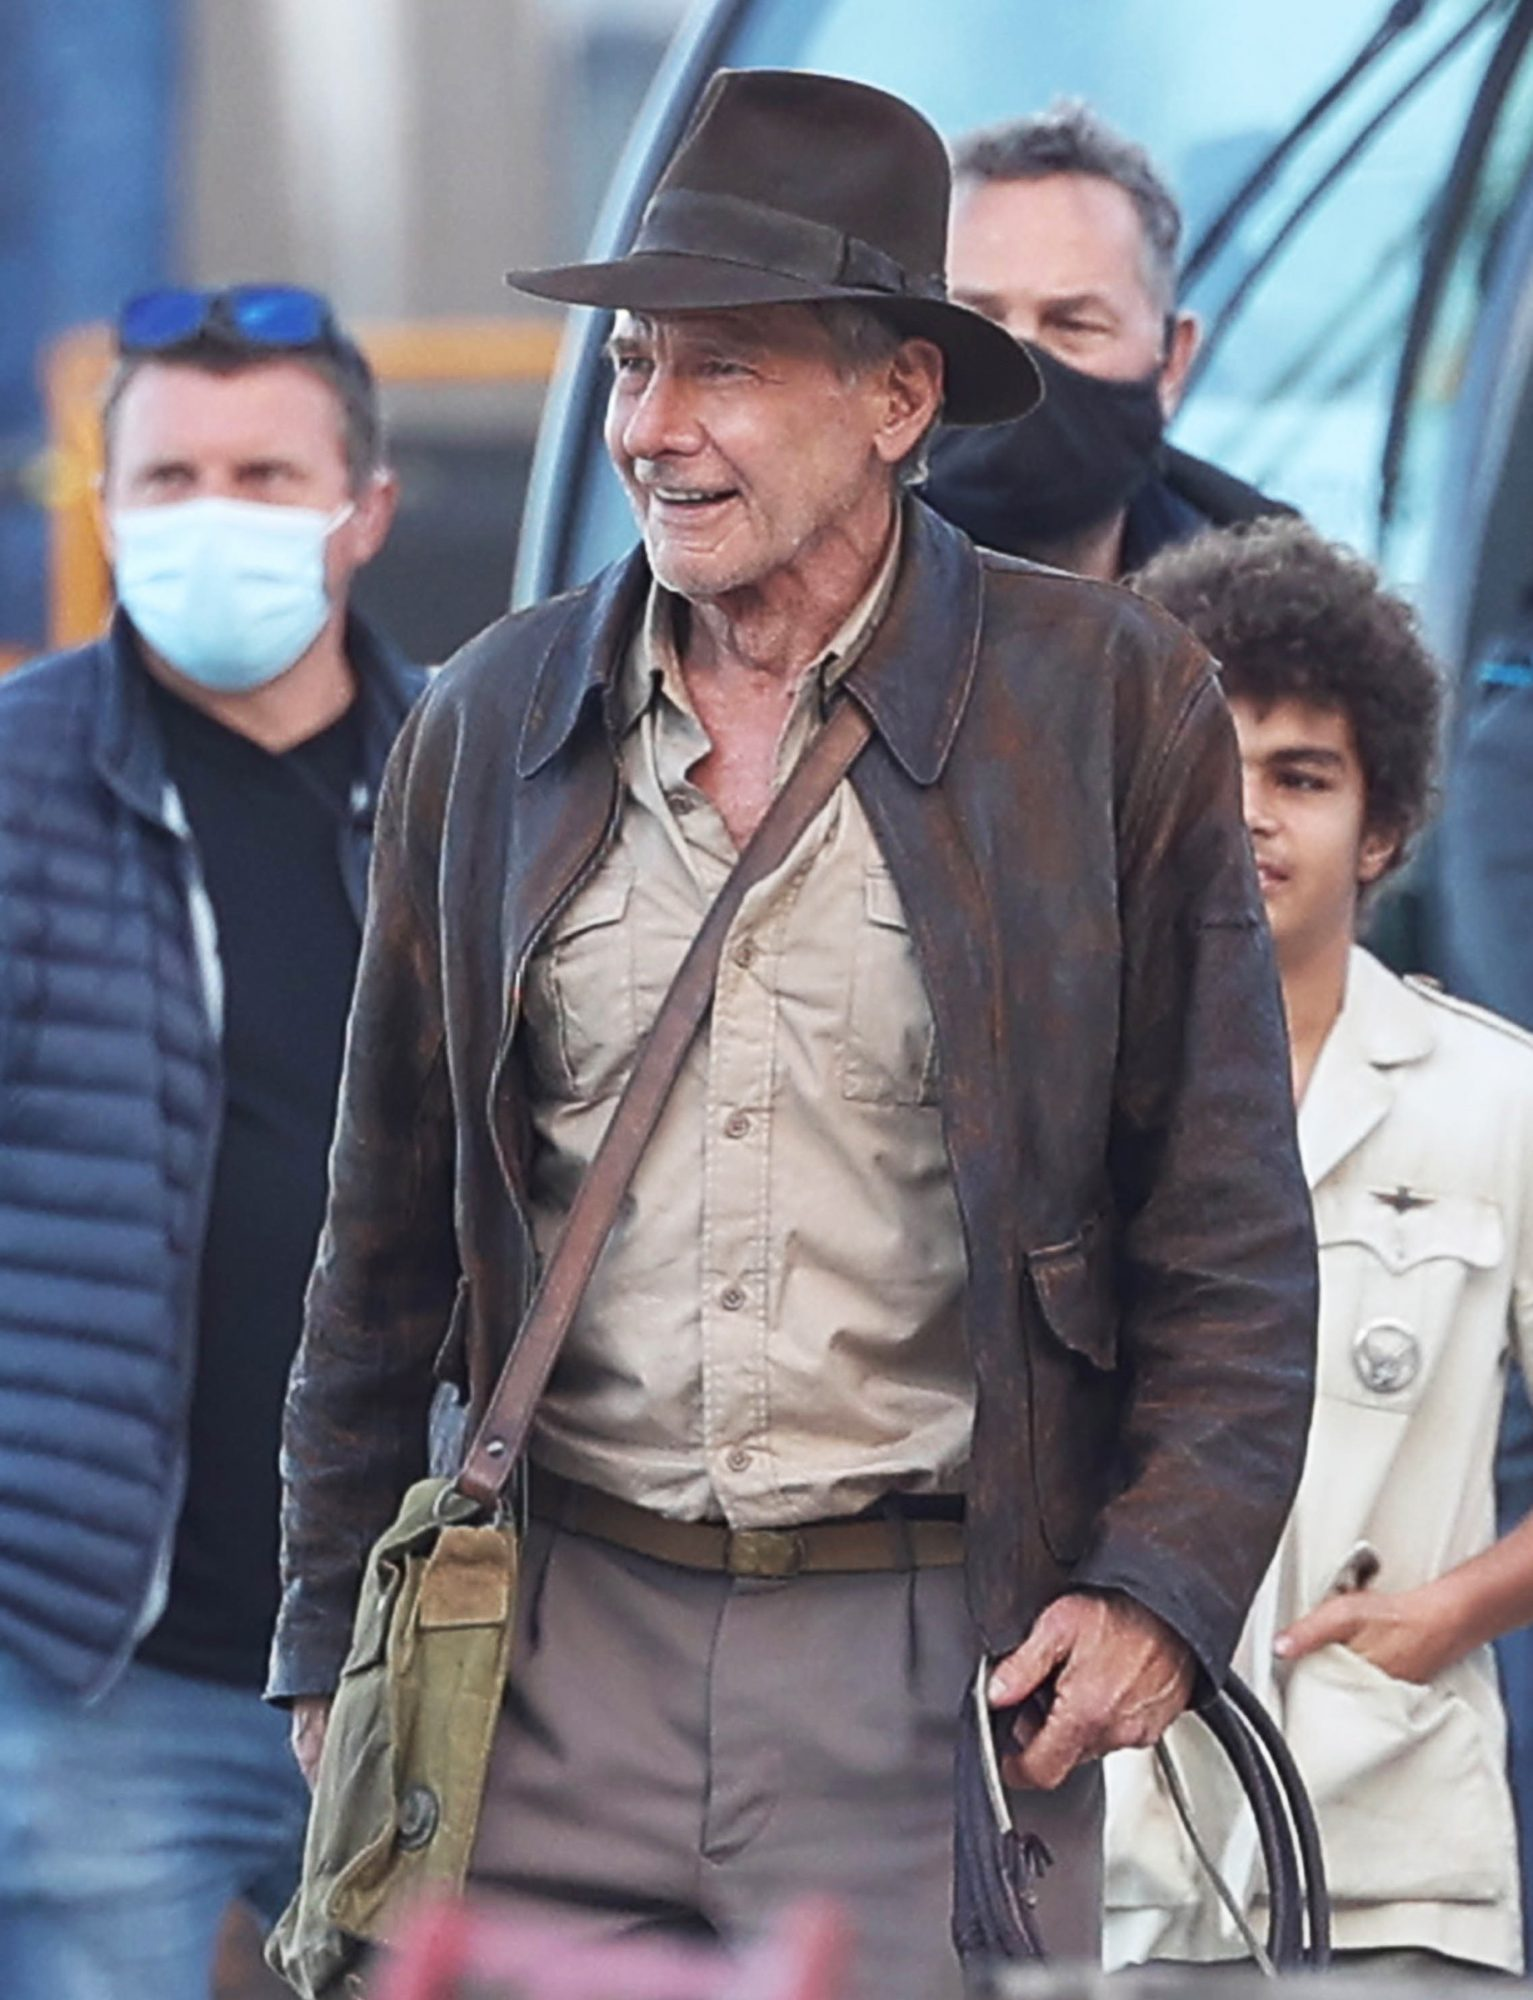 """Harrison Ford is seen on the set of """"Indiana Jones 5"""" in Sicily on October 18, 2021 in Castellammare del Golfo, Italy"""